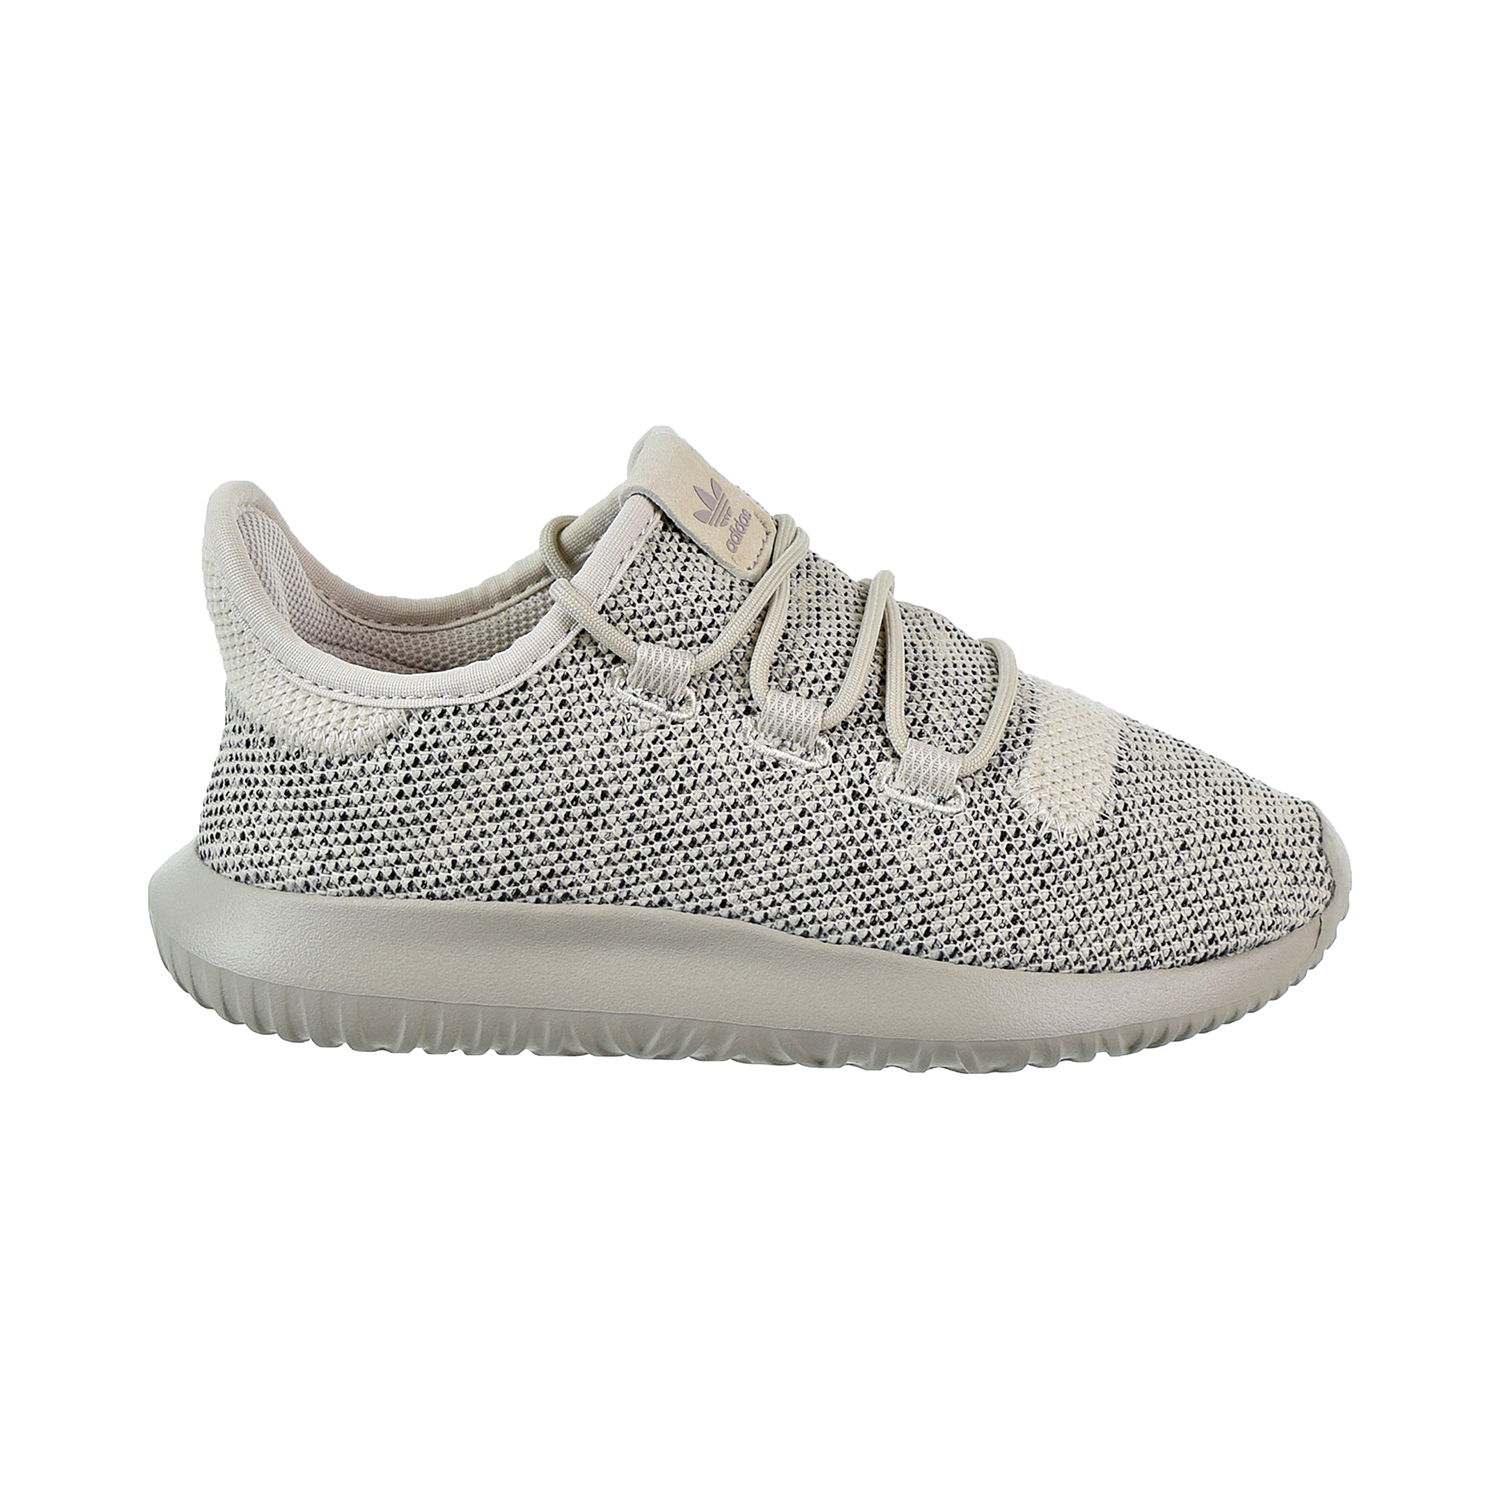 a7d1c23bc0f3 Details about Adidas Tubular Shadow Big Kids  Clear Brown Light Brown Core  Black bb8884